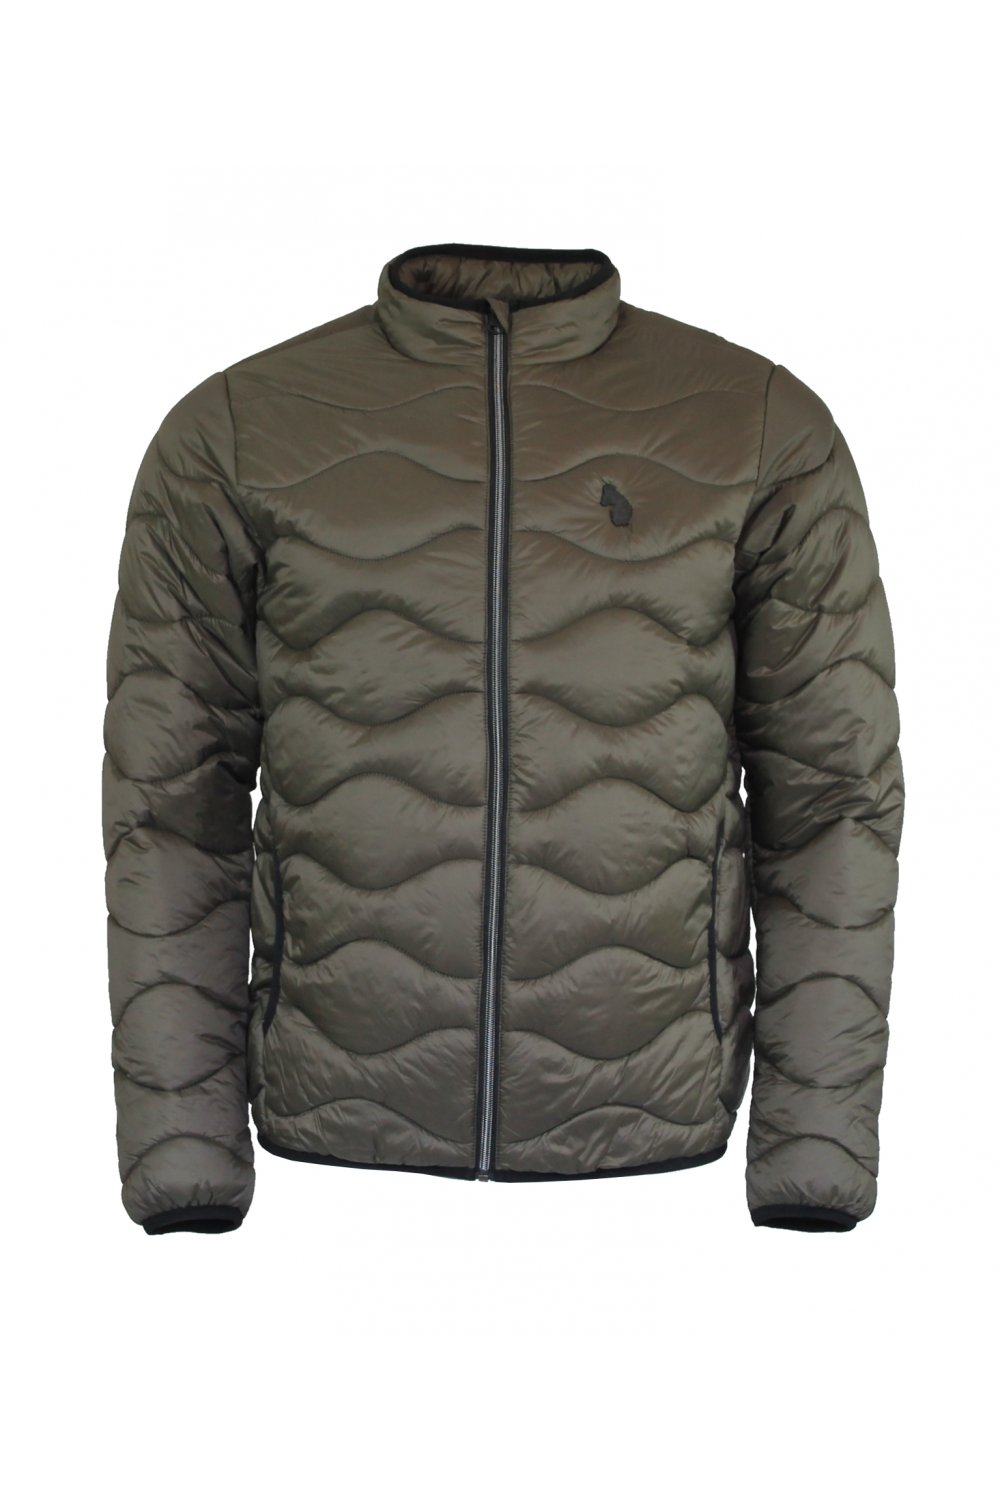 Luke 1977 Westy Quilted Jacket CP1445